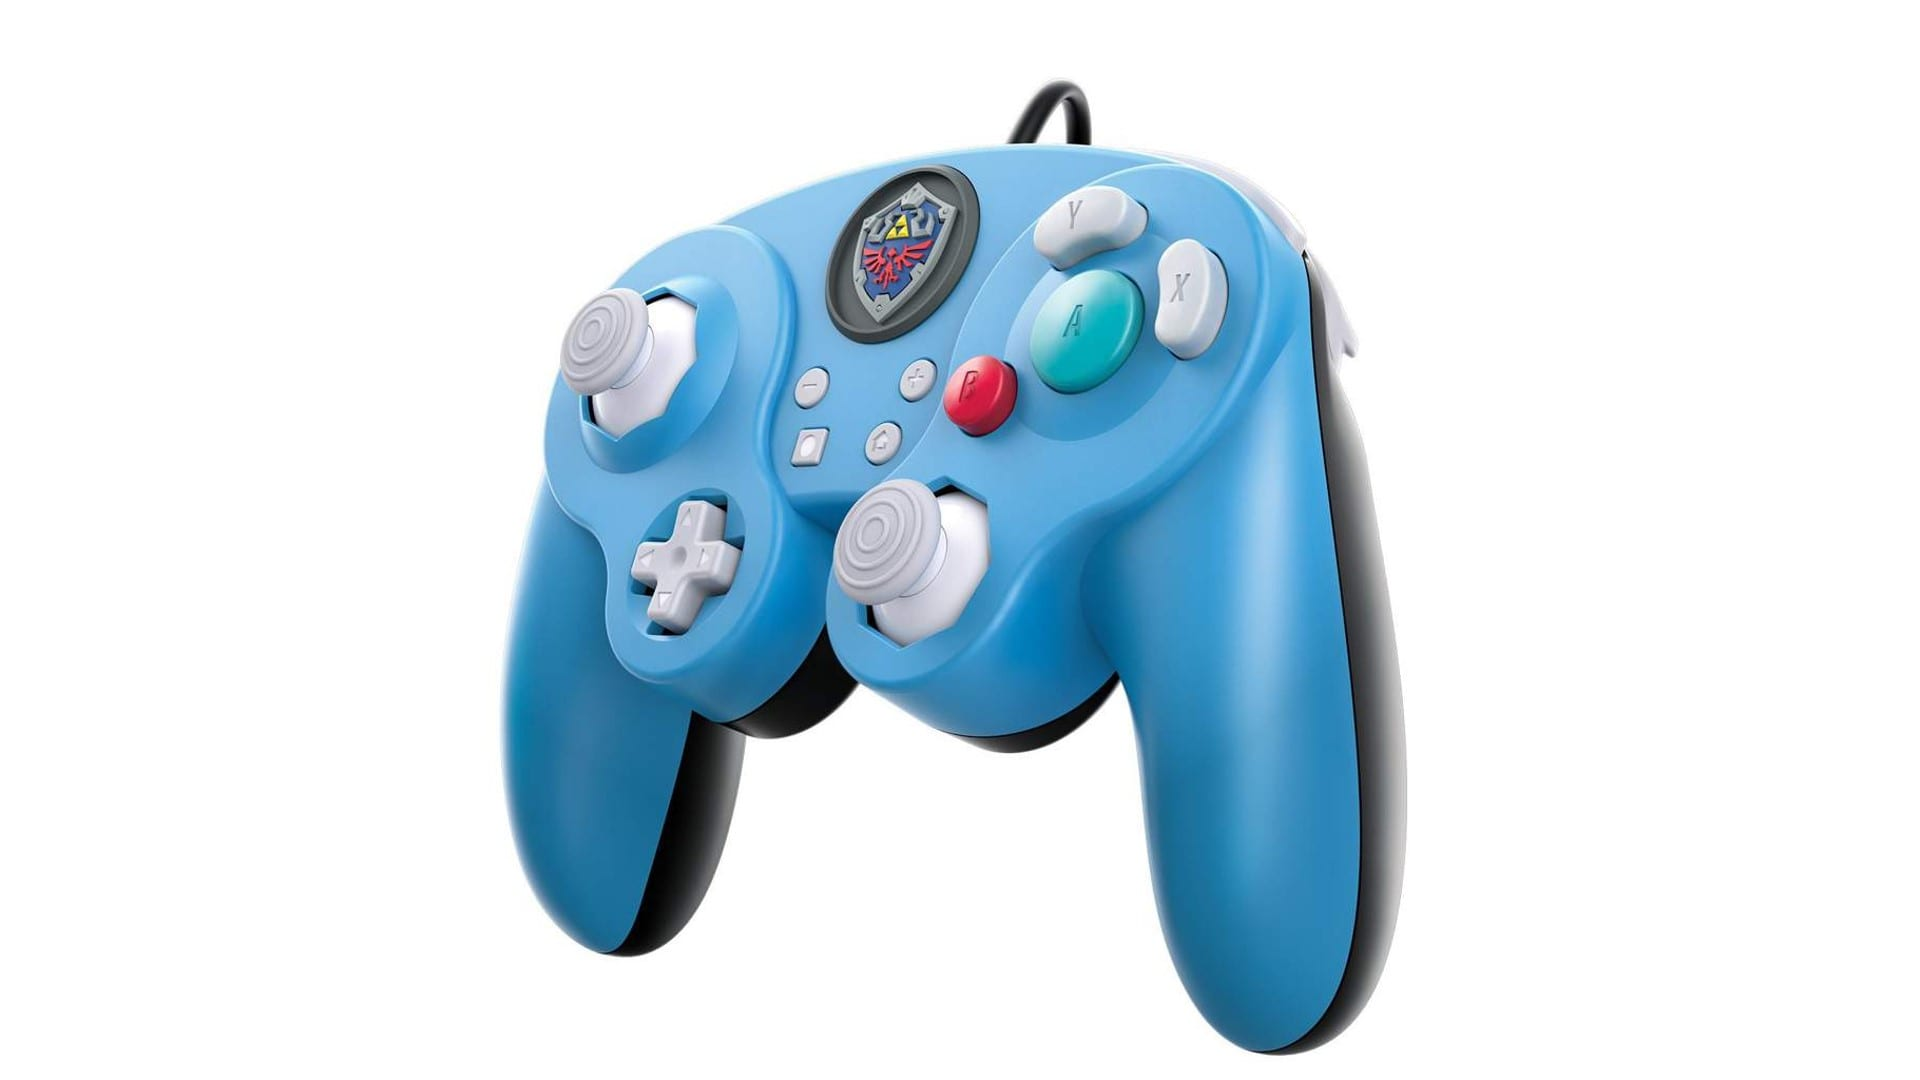 PDP Gamecube controllers for Switch - featured image